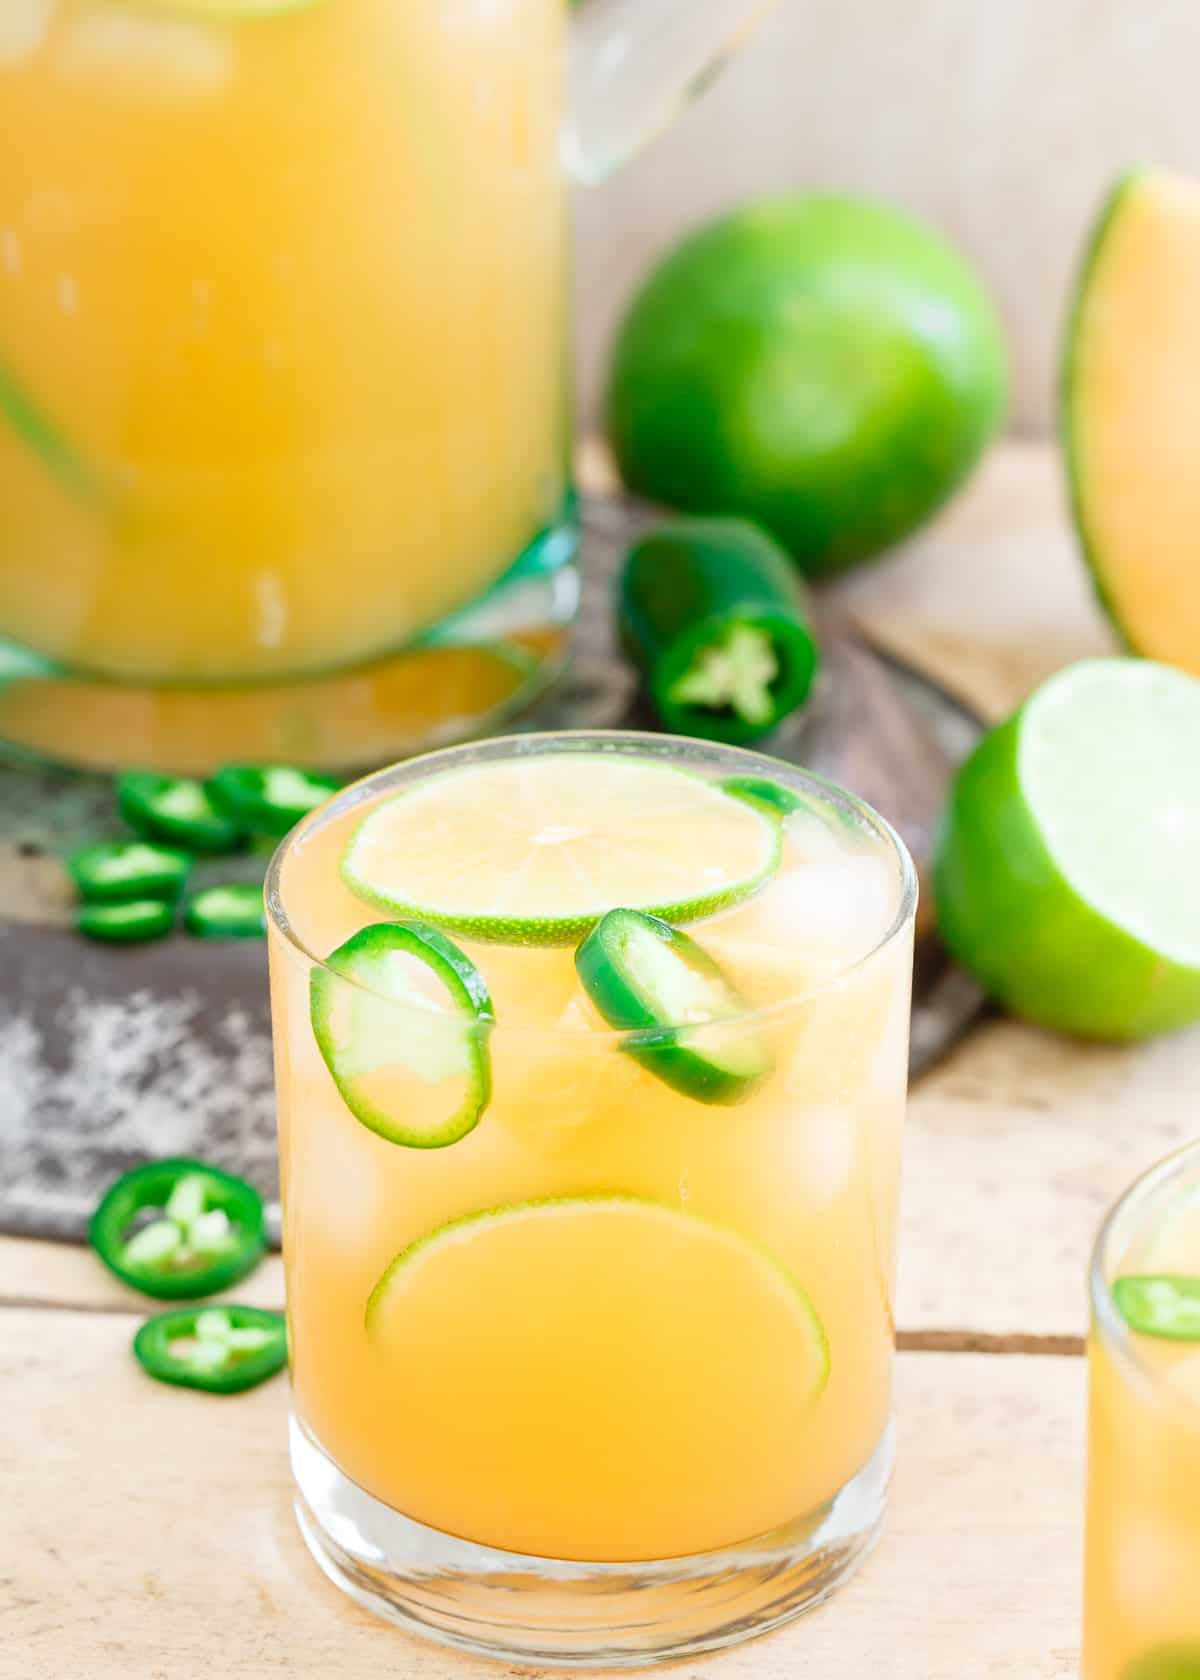 Cantaloupe Lime Jalapeno Agua Fresca is a refreshing summer drink that has it all, sweet, tart and spicy!